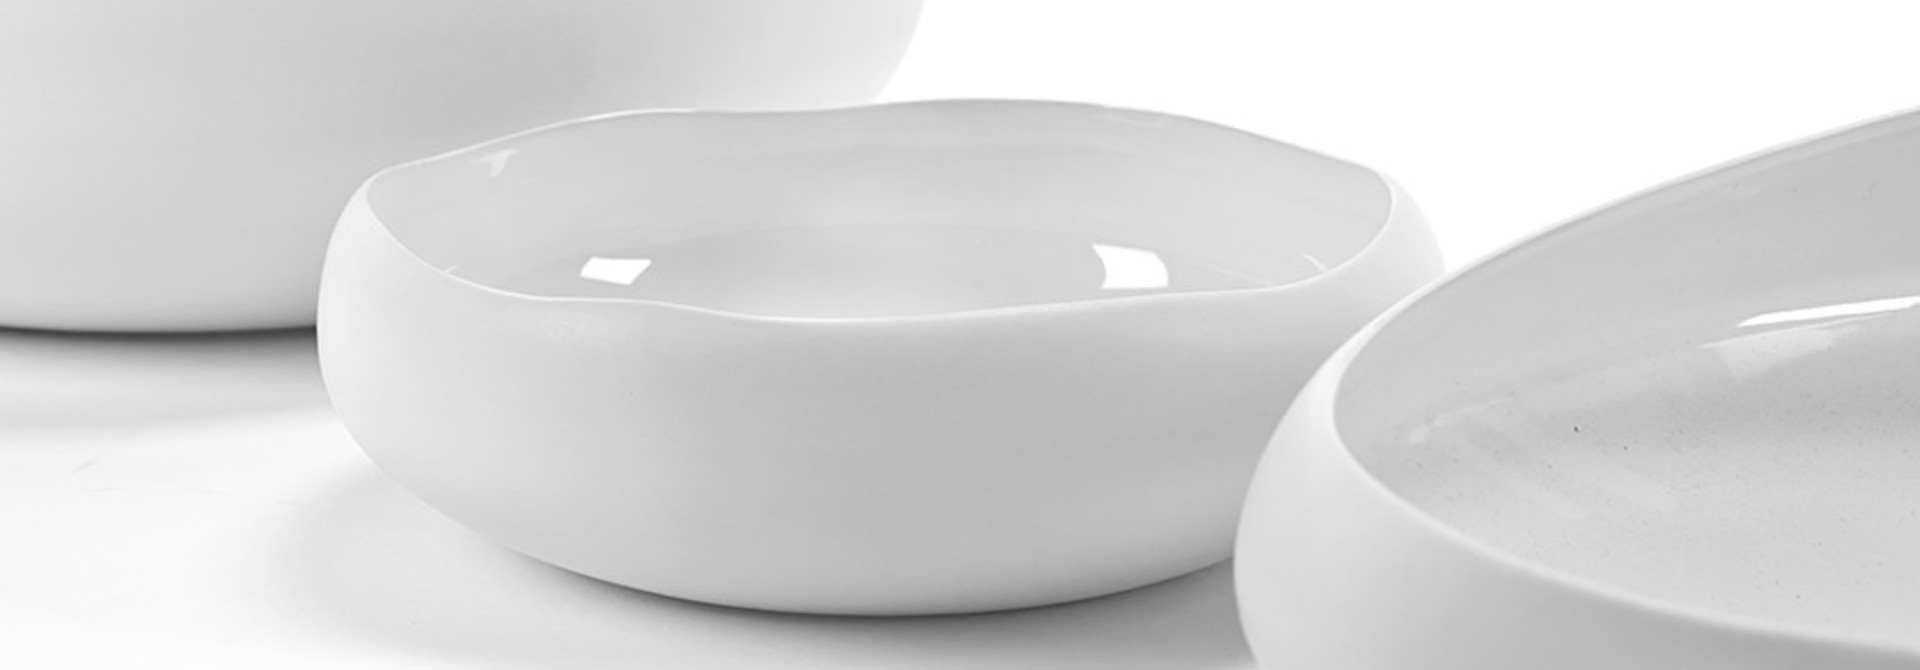 "8.5"" Bowl Irregular Shape - White"